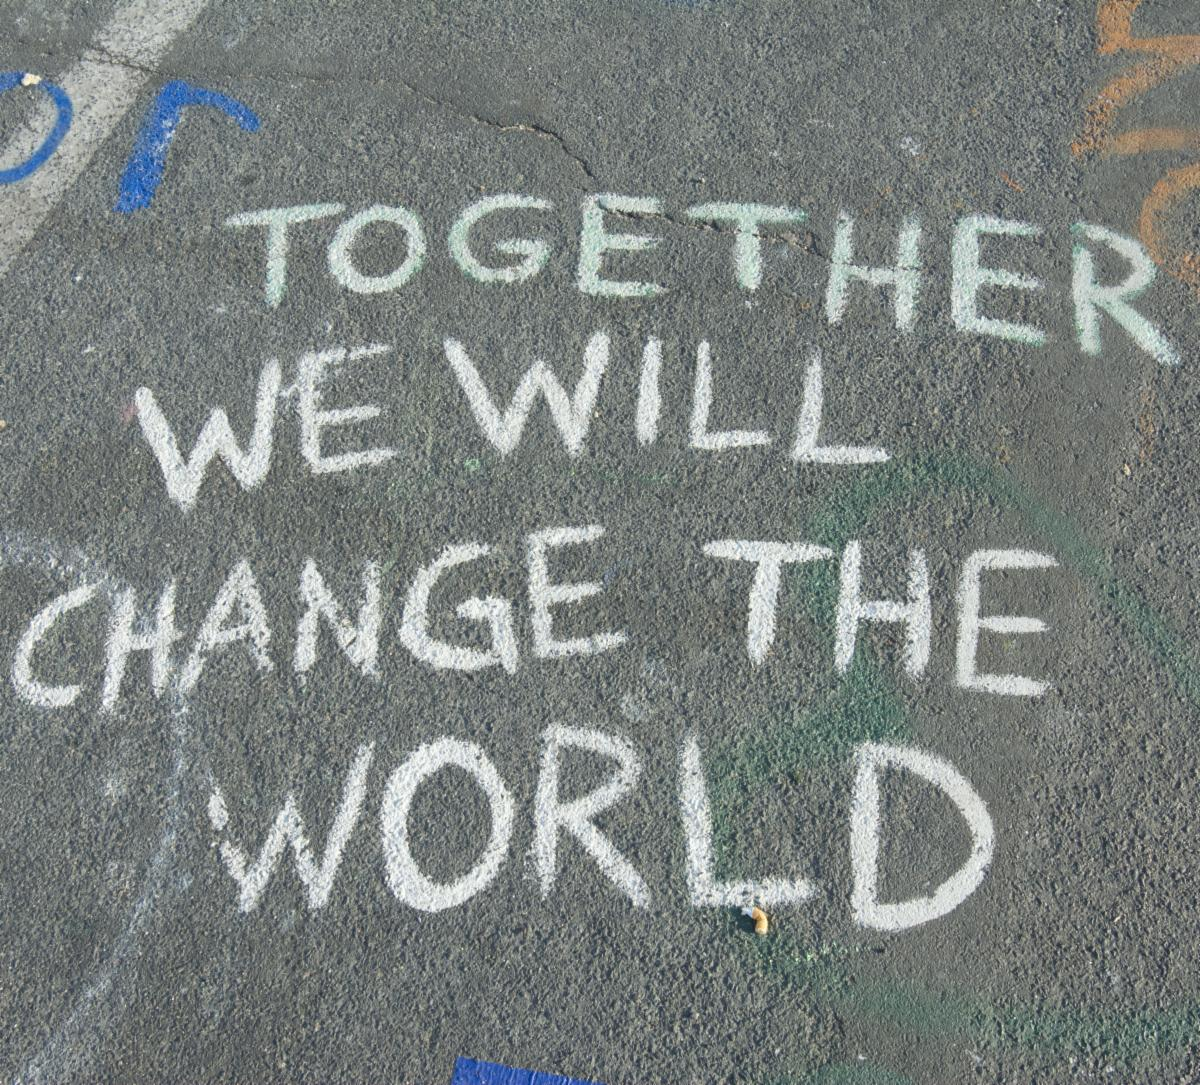 Chalk drawing that says Together We Will Change the World